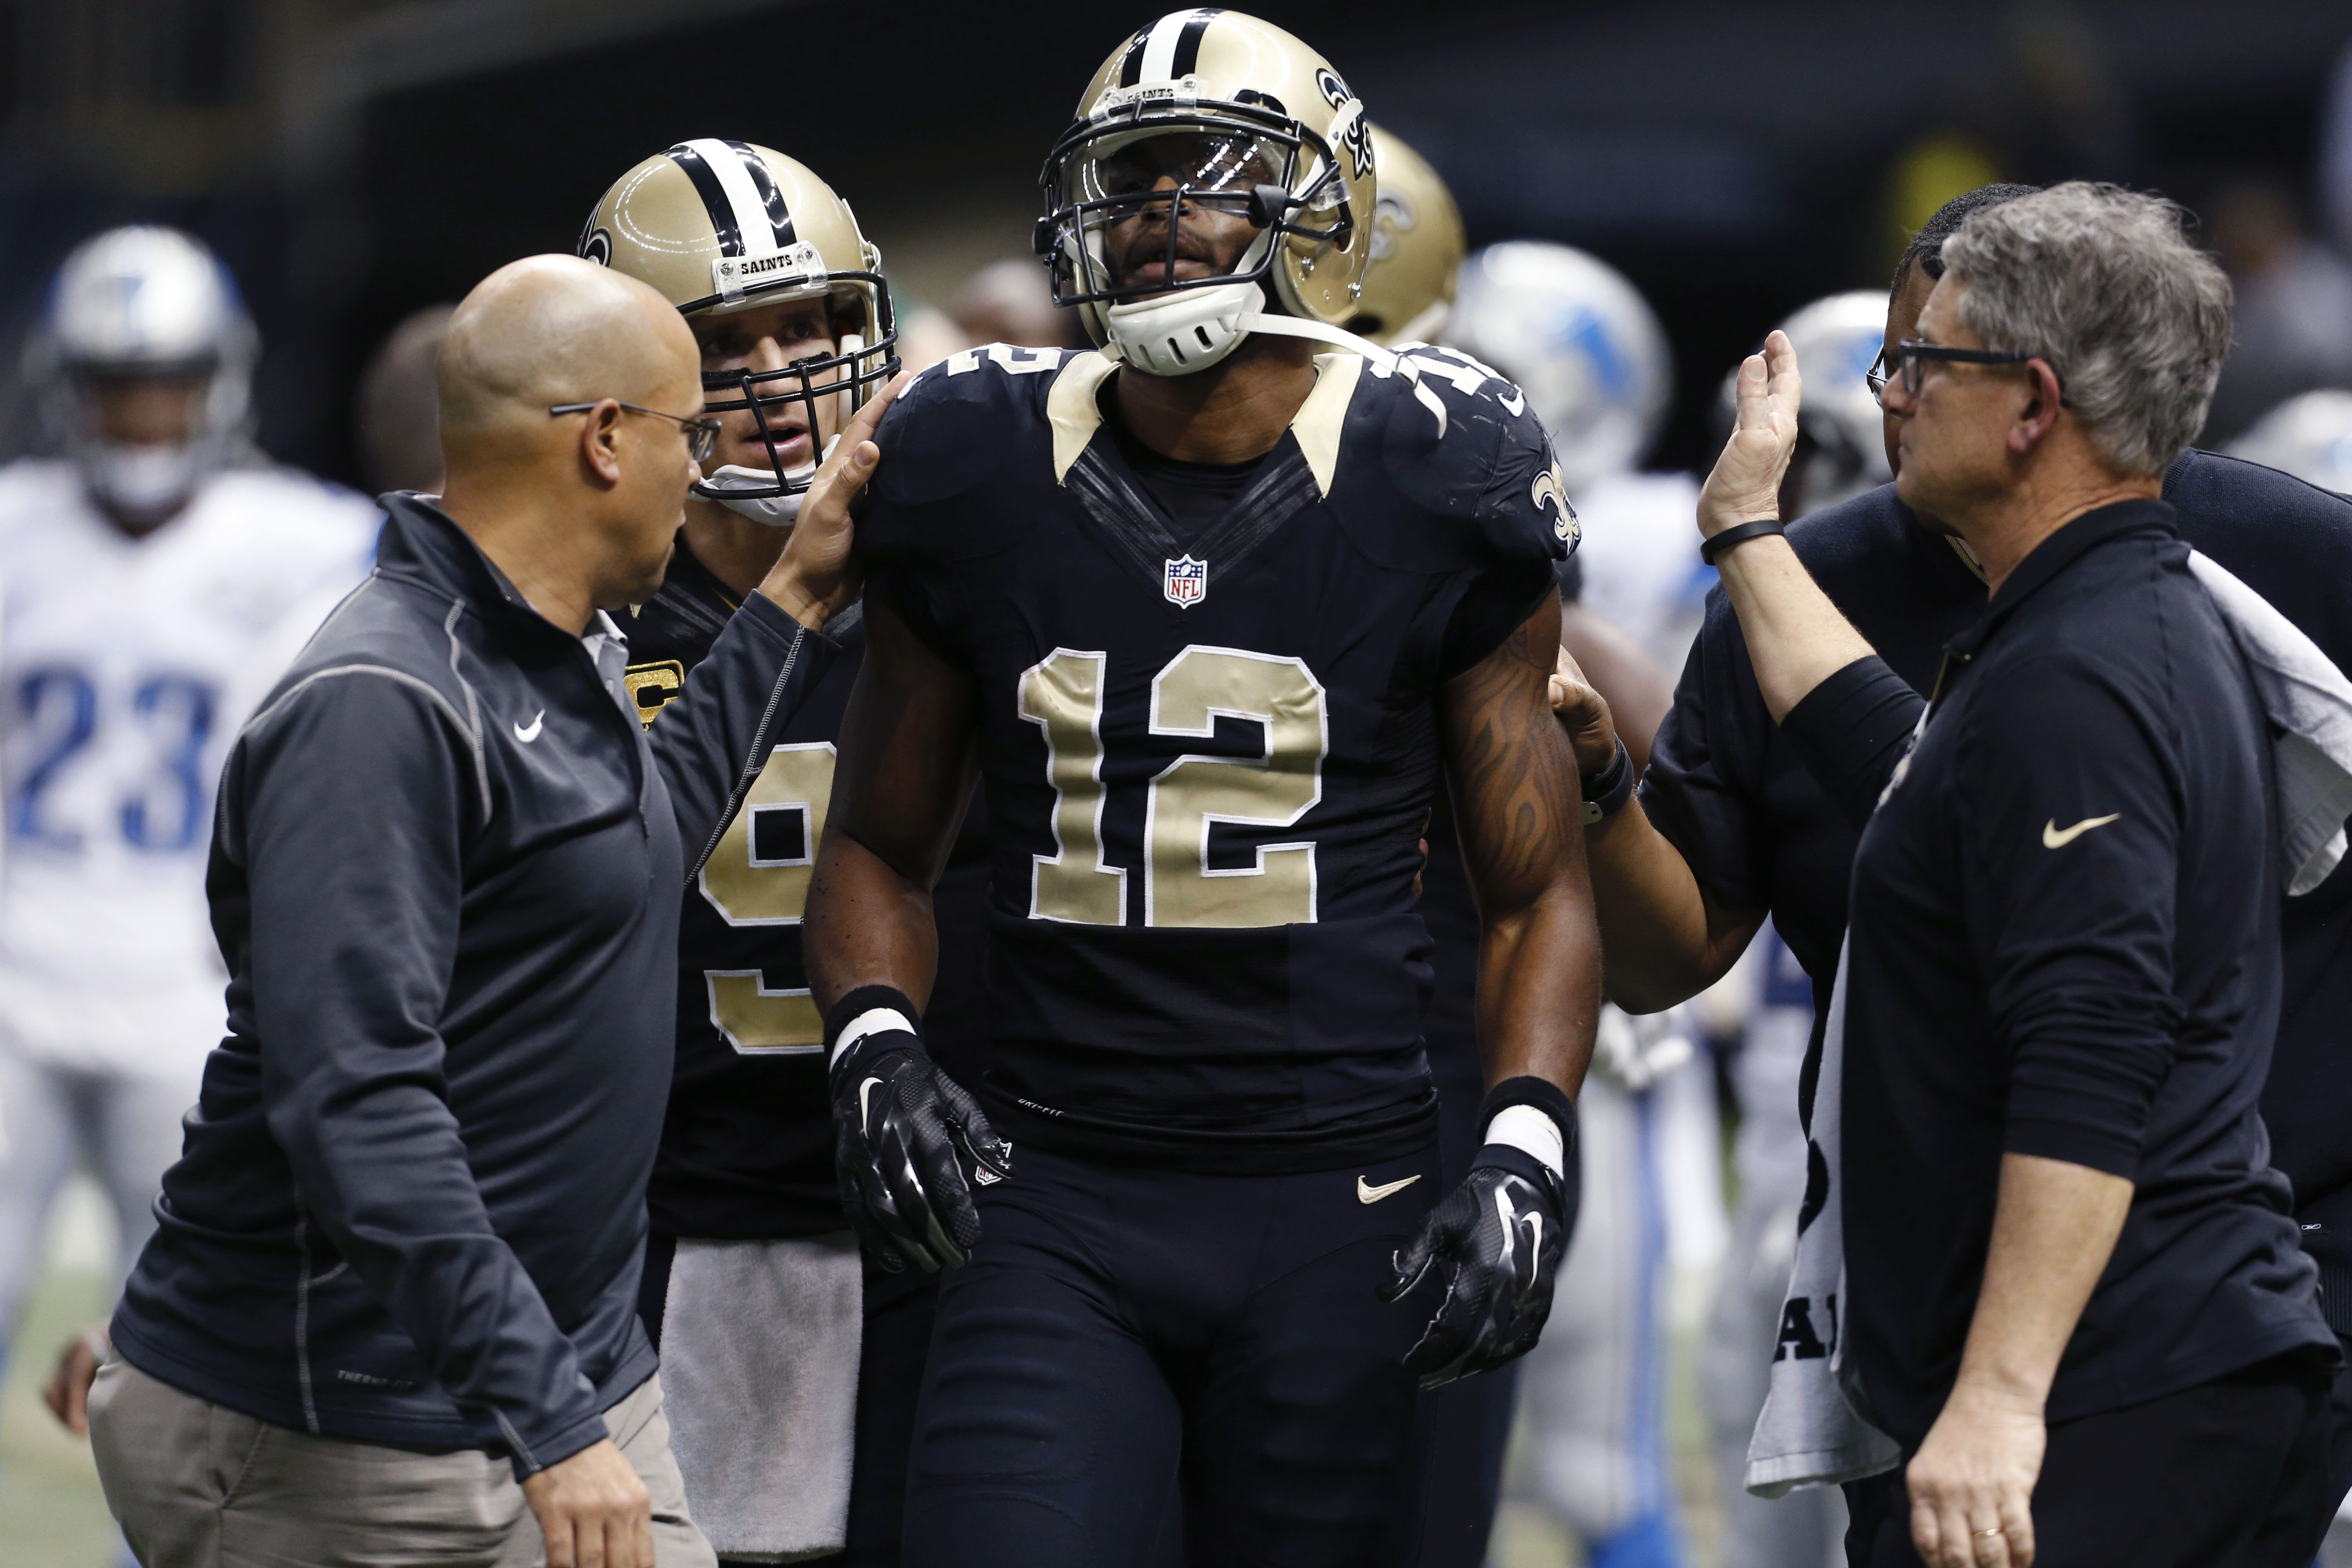 New Orleans Saints wide receiver Marques Colston (12) is tended to after he was hit by Detroit Lions strong safety Isa Abdul-Quddus in the second half of an NFL football game in New Orleans, Monday, Dec. 21, 2015. Abdul-Quddus was penalized for a helmet-t